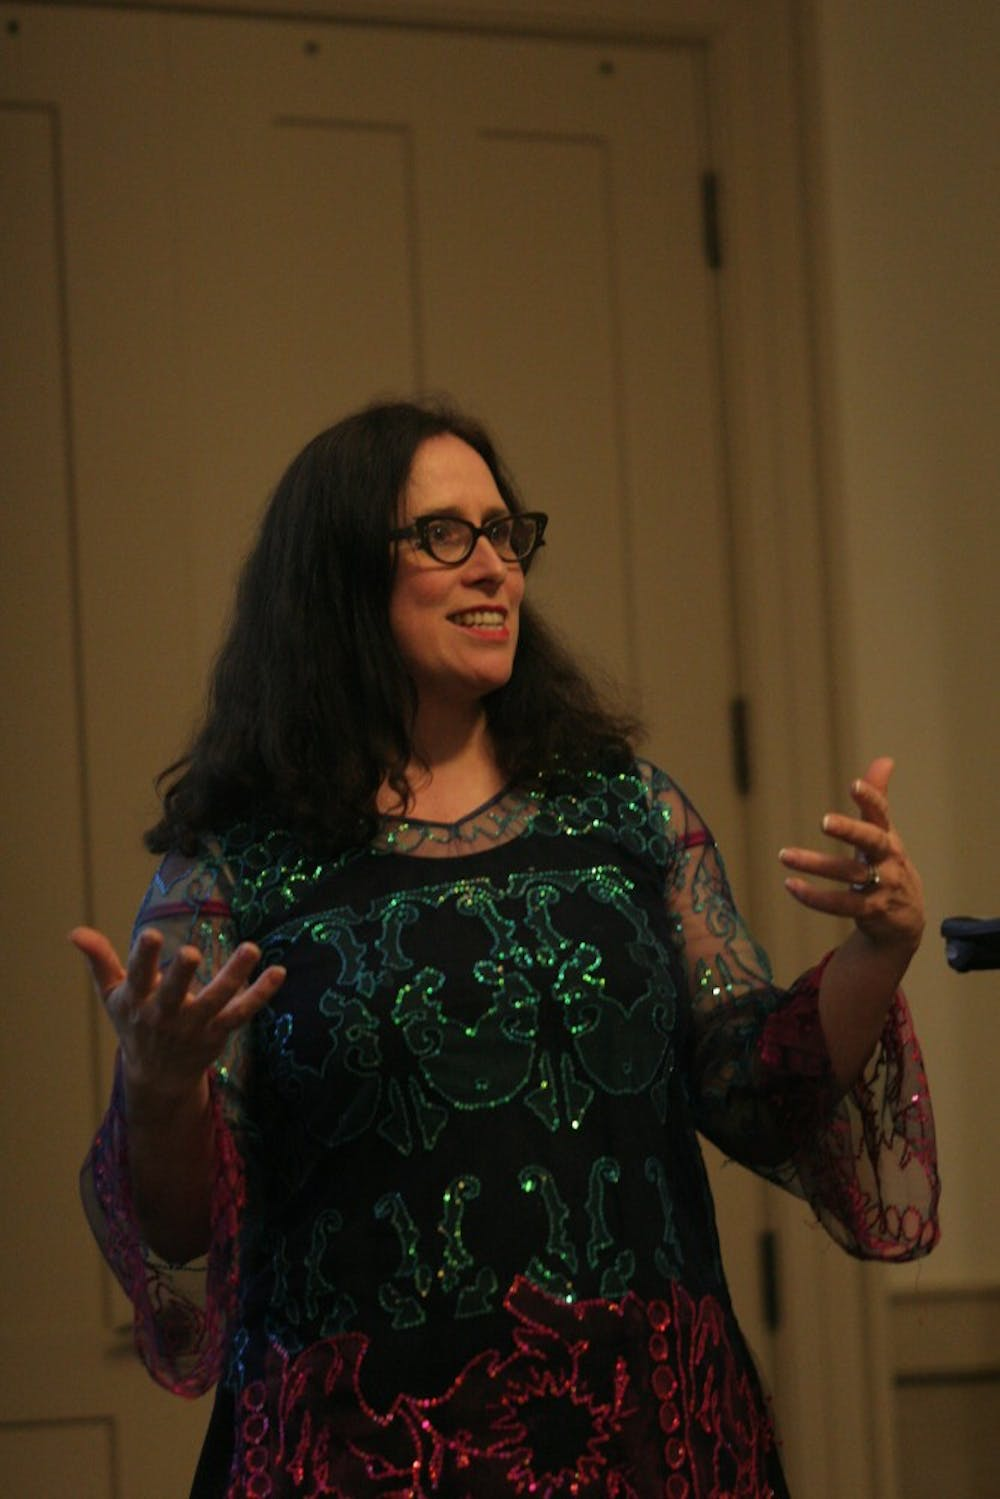 """Caitlin Fisher, Canada Research Chair in Digital Culture and Director of the Augmented Reality Lab at York University gave a lecture entitled """"Building small worlds"""" Tuesday evening in Hyde Hall. Augmented reality involves overlaying digital images on the real world. """"Augmented reality is a magical technology where the rules haven't been written yet. Augmented reality is important because it uses digital tools but the real world still matters,"""" Caitlin said. During the lecture she showed clips of various projects that she and her students have done and talked about projects that they are currently working on. She emphasized the potential for augmented reality in relation to other academic disciplines and the importance of having creative people who have stories to tell."""